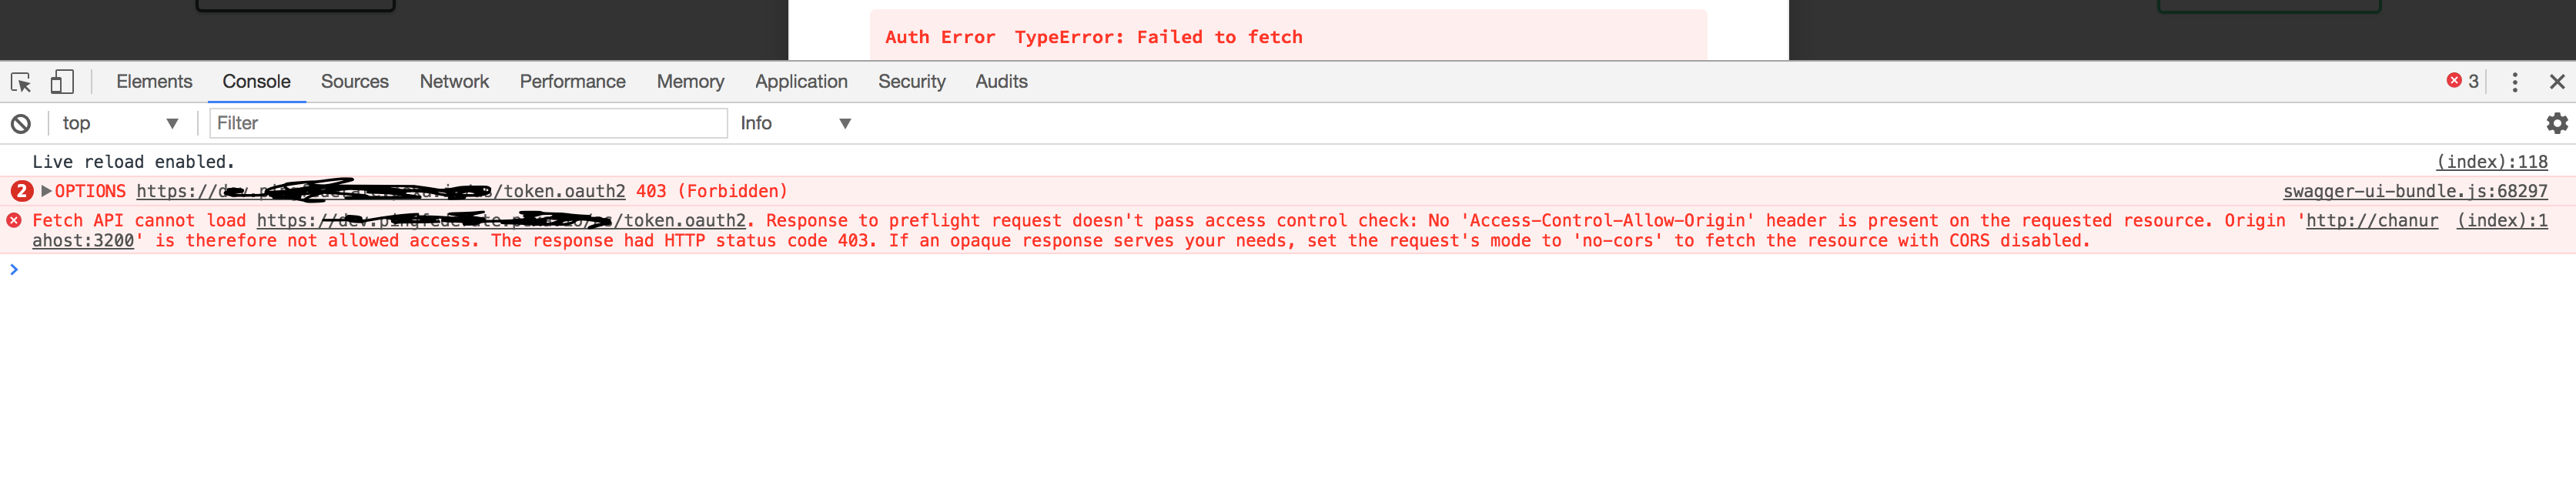 Developers - Swagger-ui oauth2 accesscode flow not working